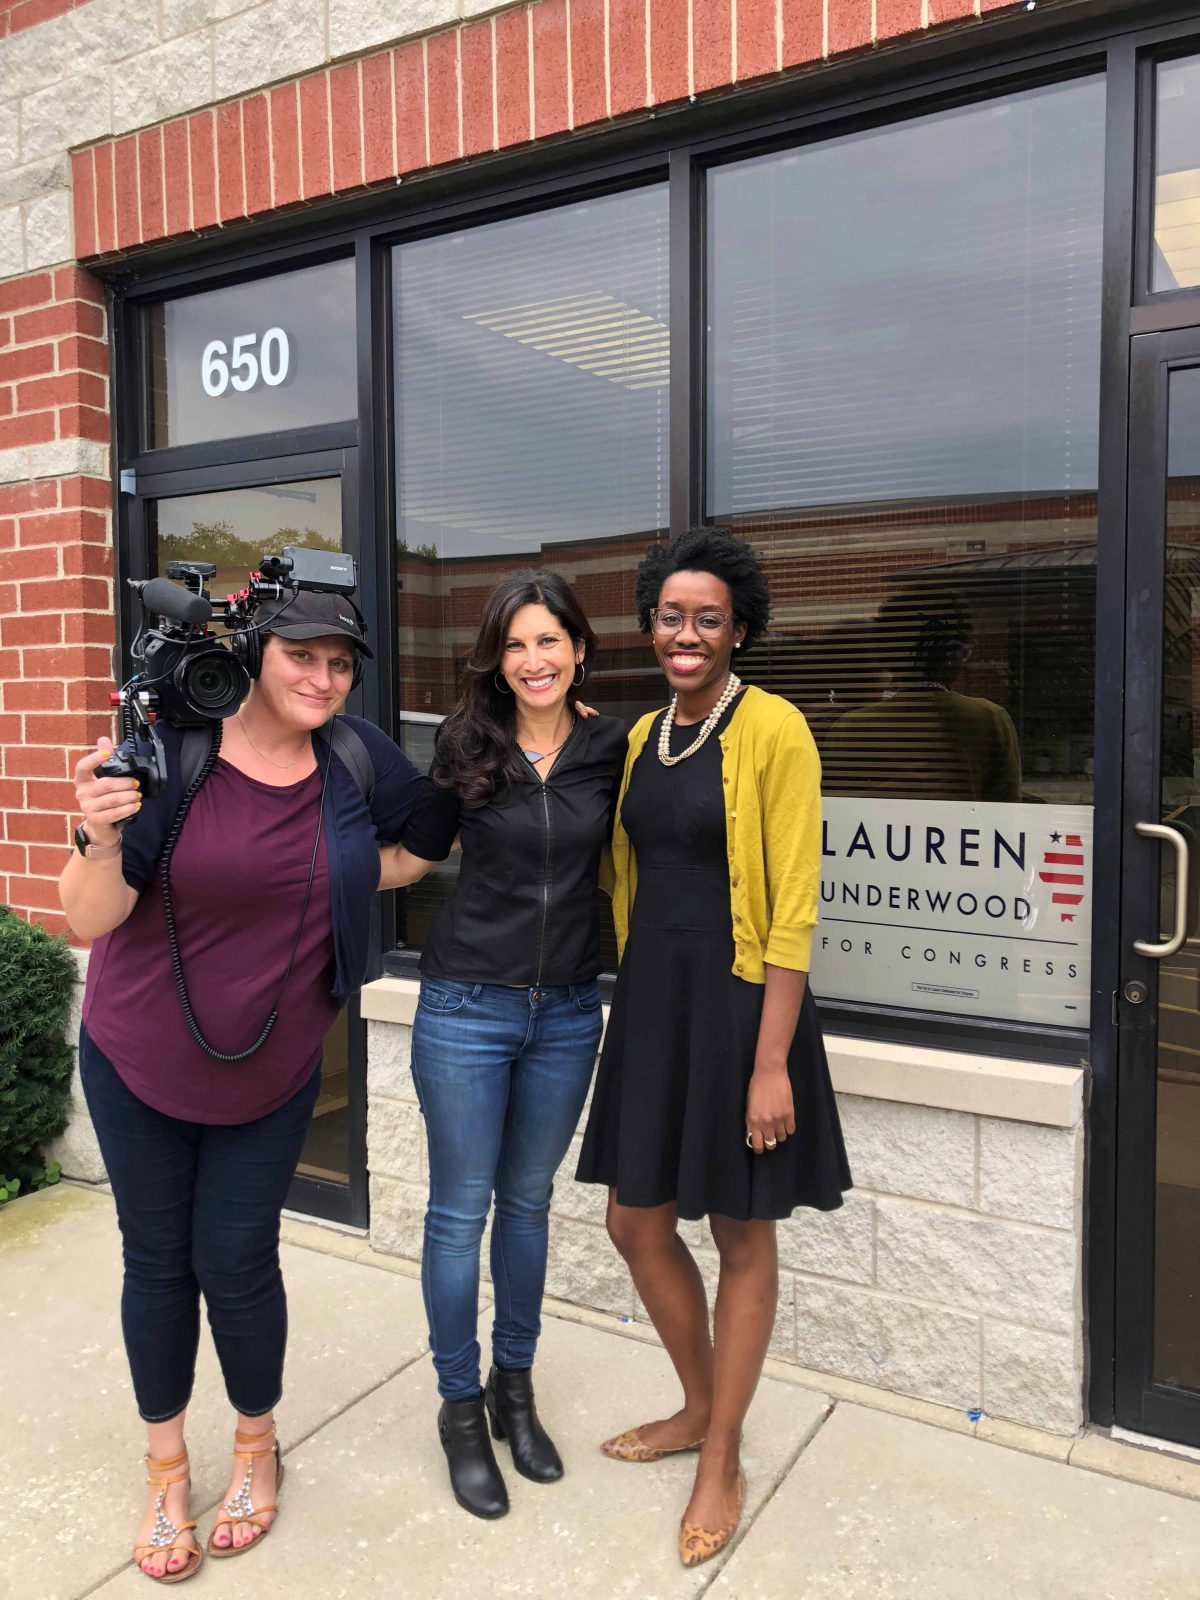 Wendy Sachs with Lauren Underwood during her 2018 campaign and SURGE cinematographer Margaret Byrne.